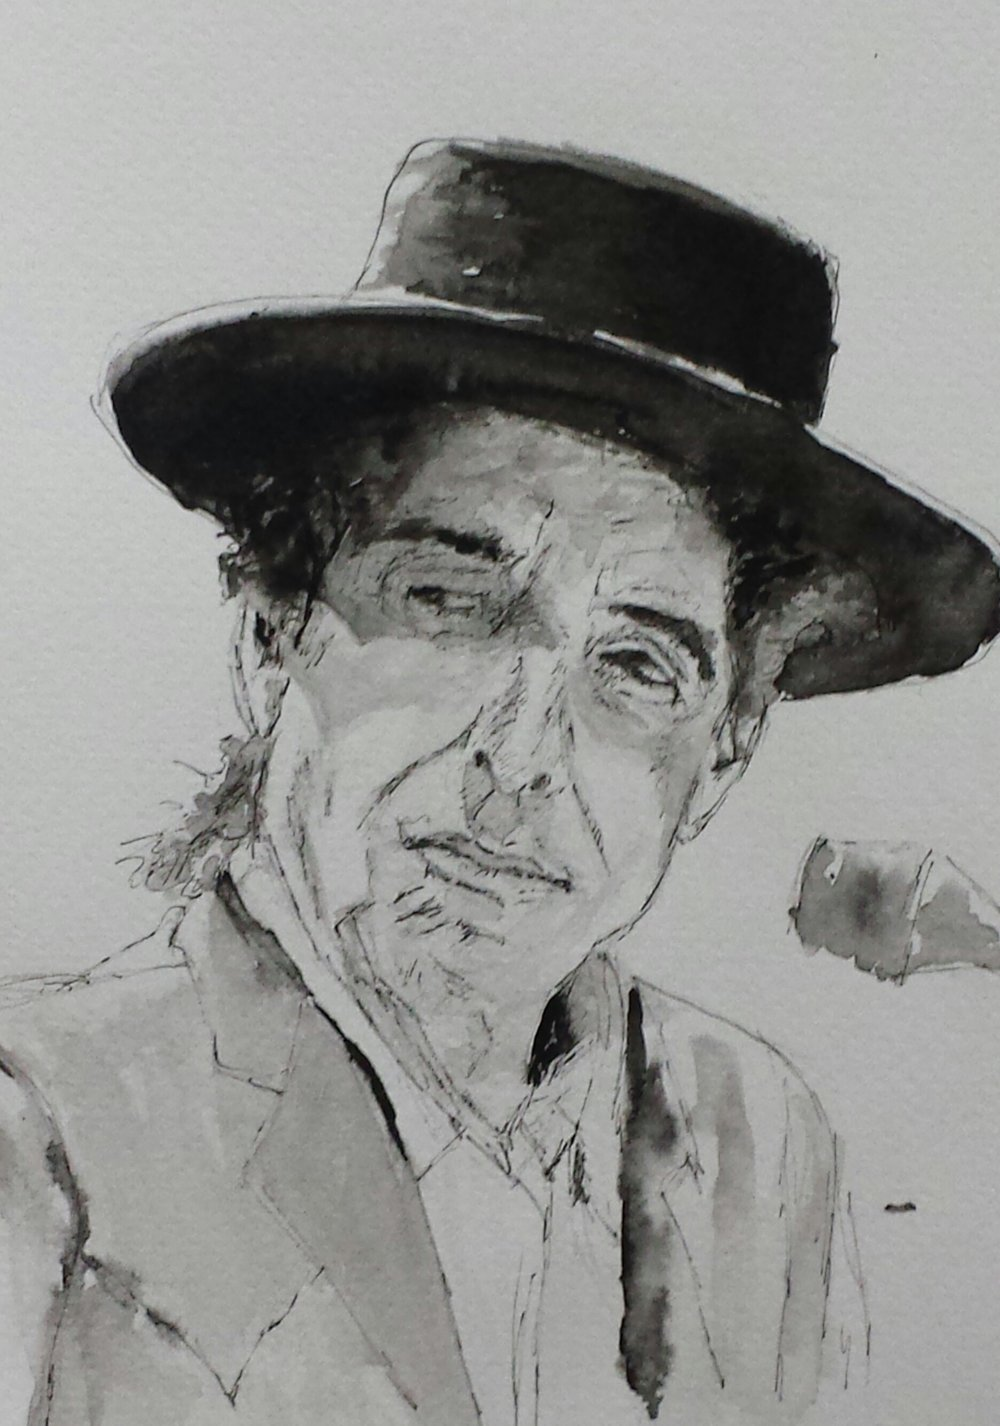 Dylan, 2016, pen and wash.